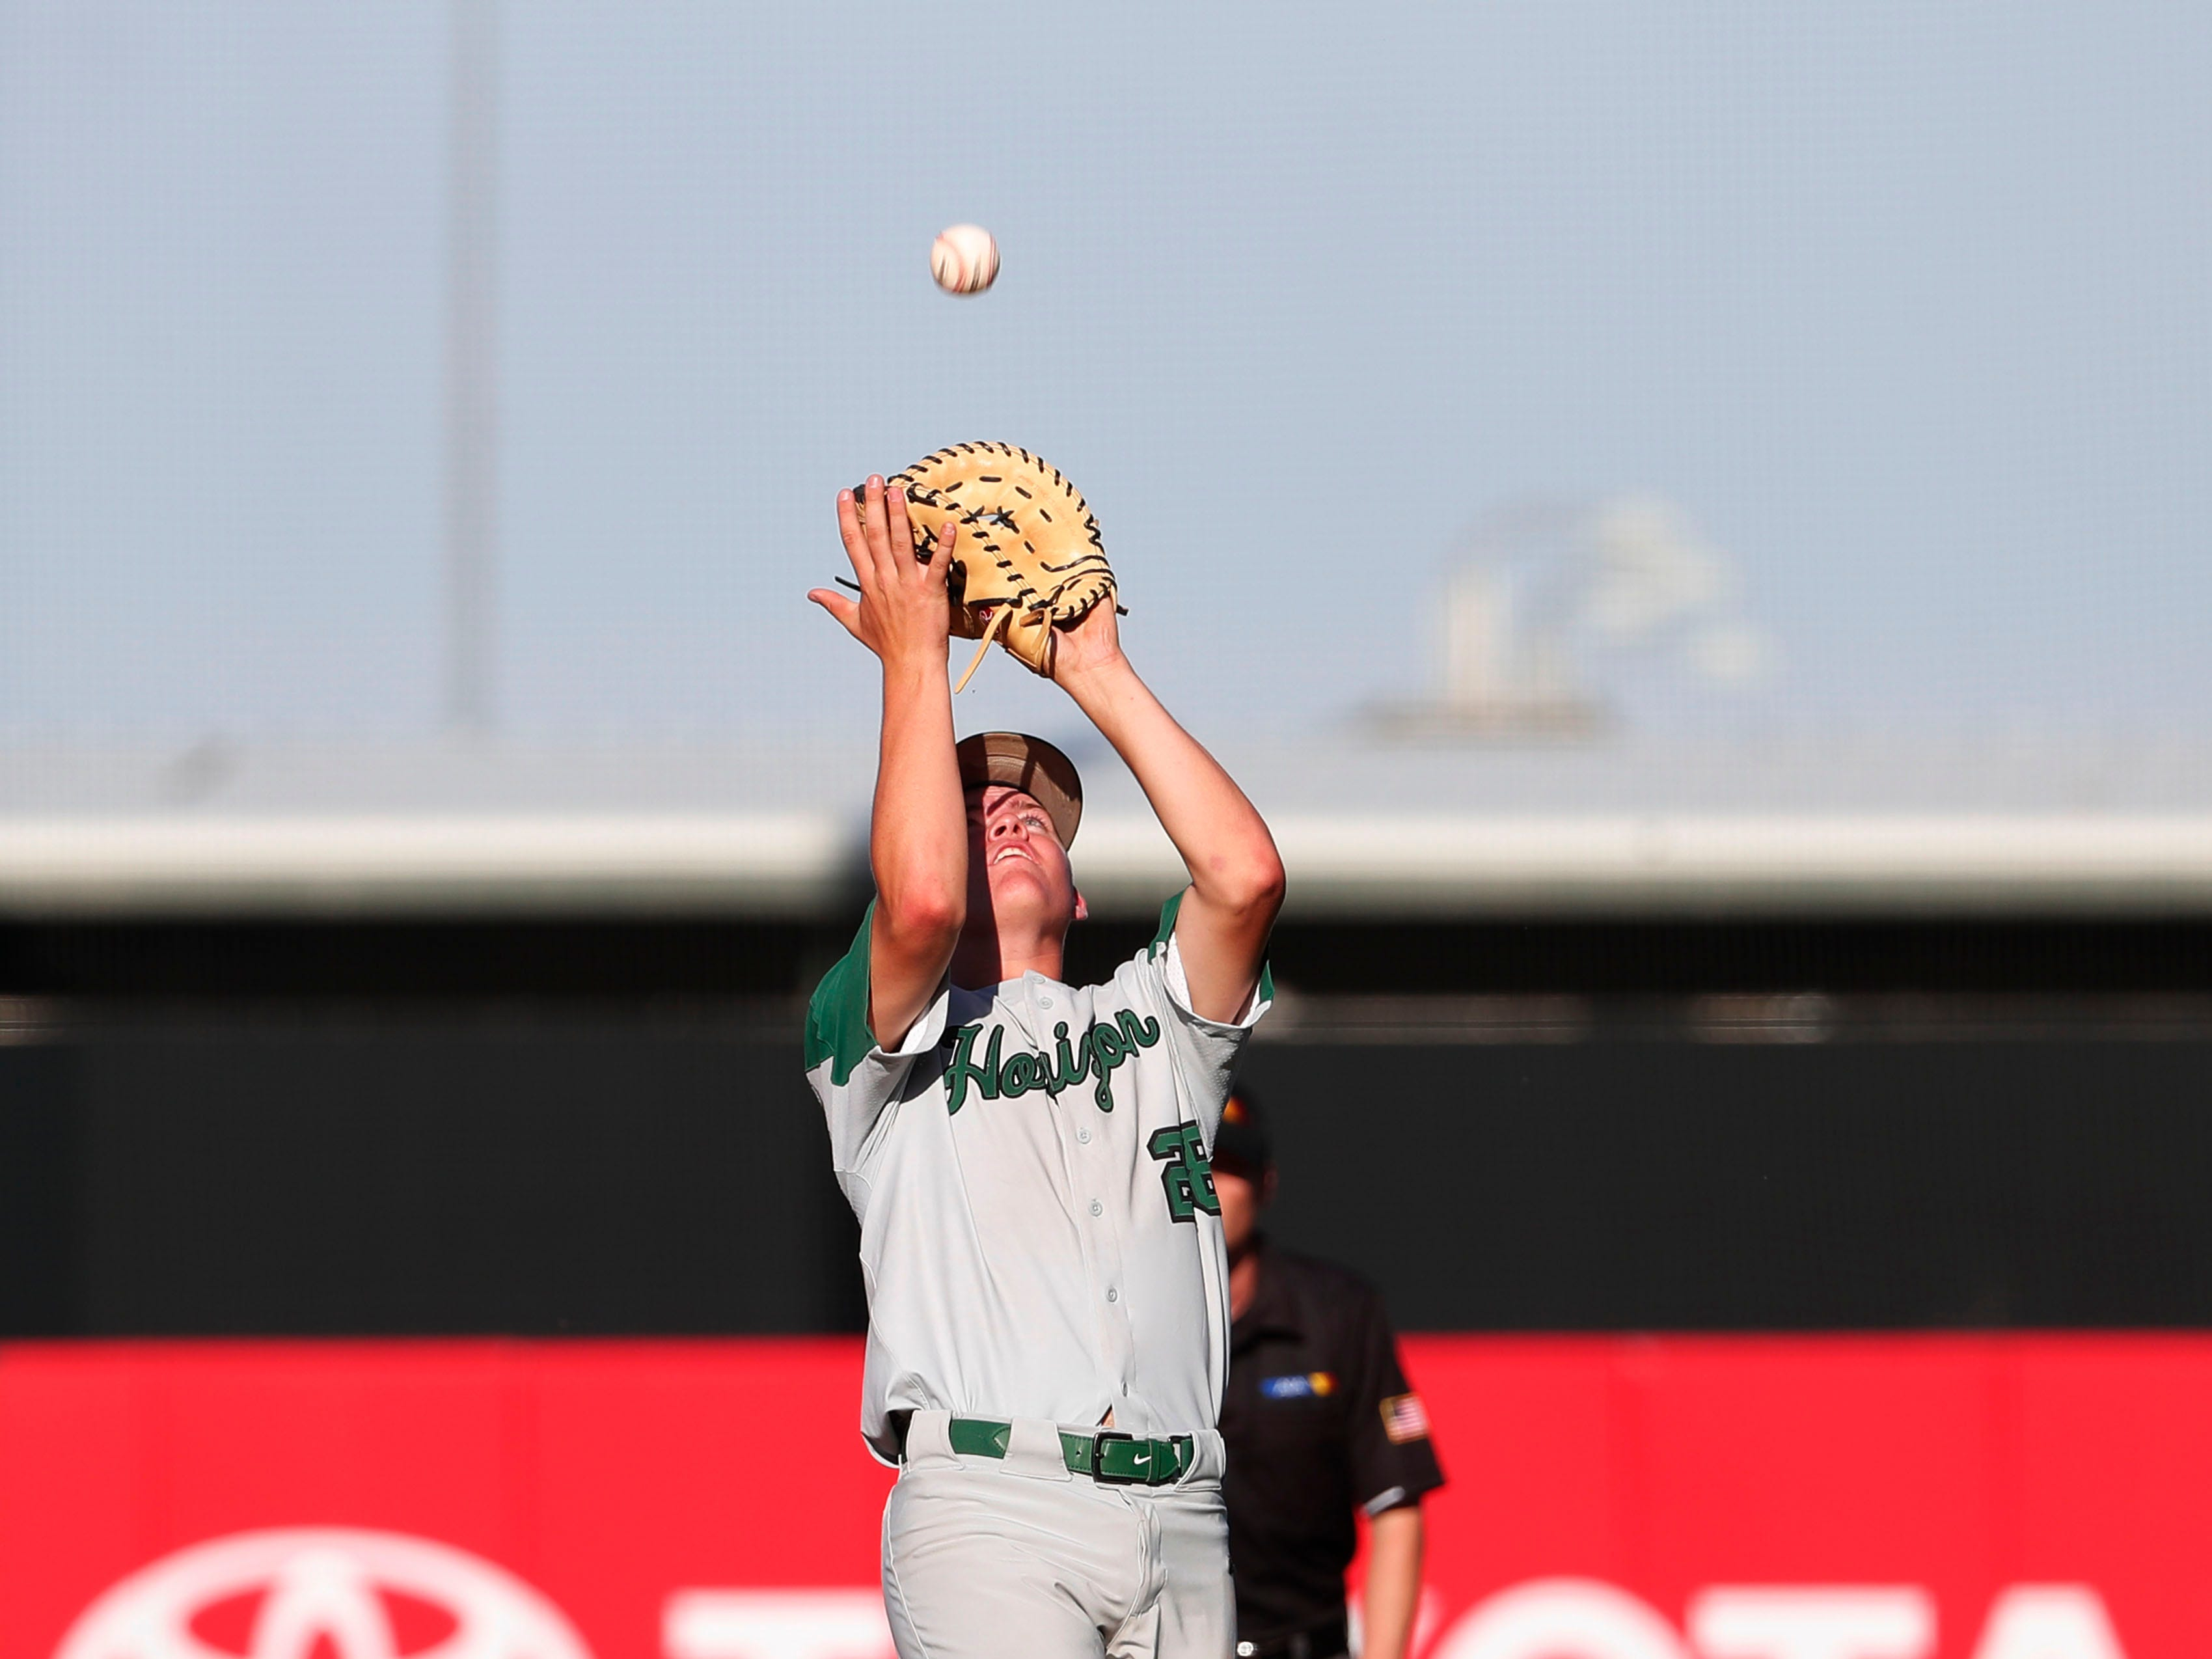 \h28 catches a pop-up during the 5A State Baseball Championship against Nogales in Tempe, Ariz. May 14, 2019.